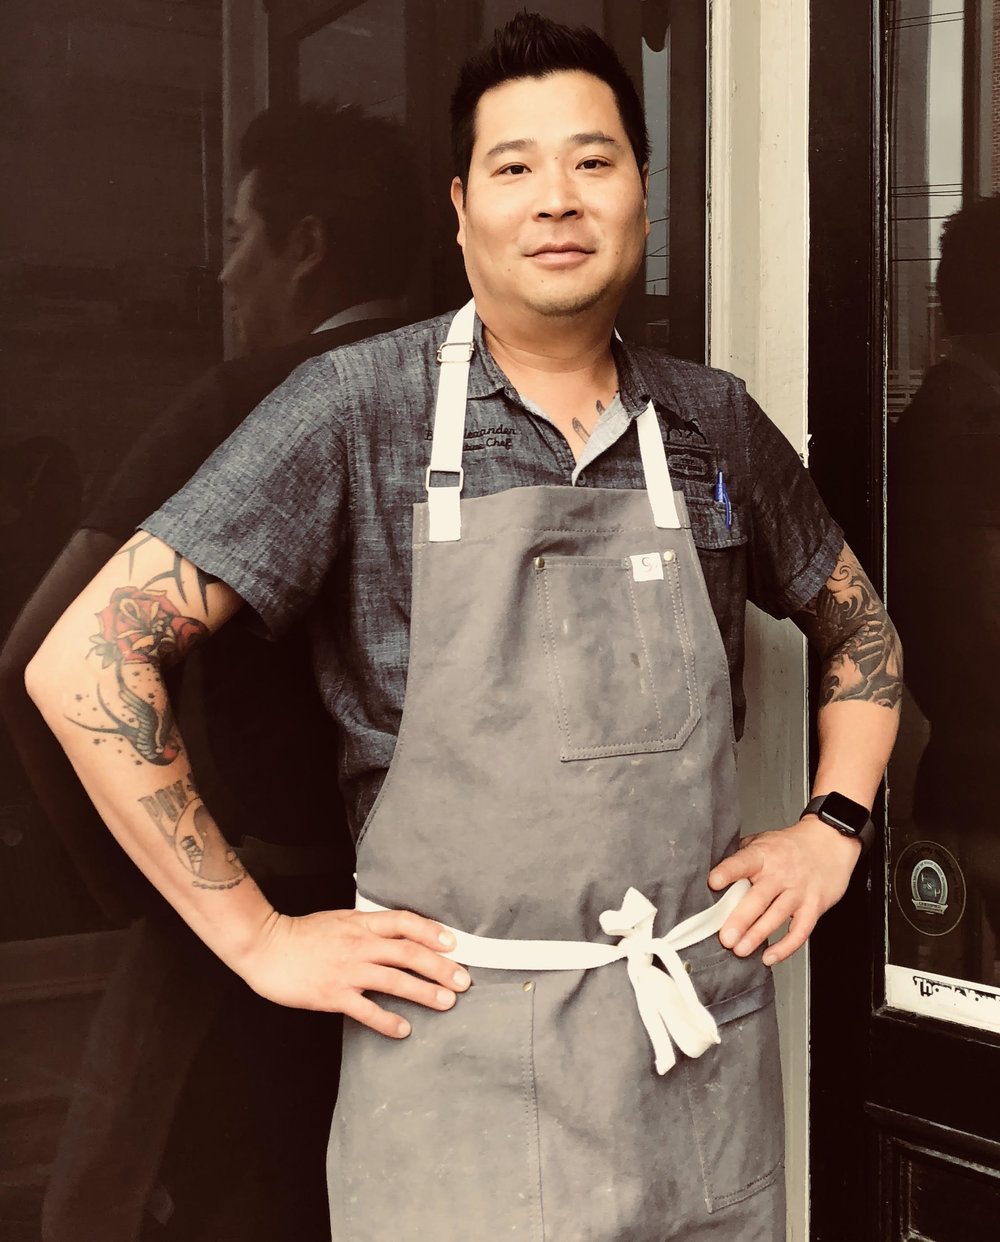 Ben AlexanderThe Tavern - Ben is the executive Chef from South Korea. He brought his culinary to Tulsa, OK. He is avid about always using fresh ingredients in his dishes. His favorite food to make is anything to do with noodles. With tasteful culinary dishes, his skills still show where he is from.